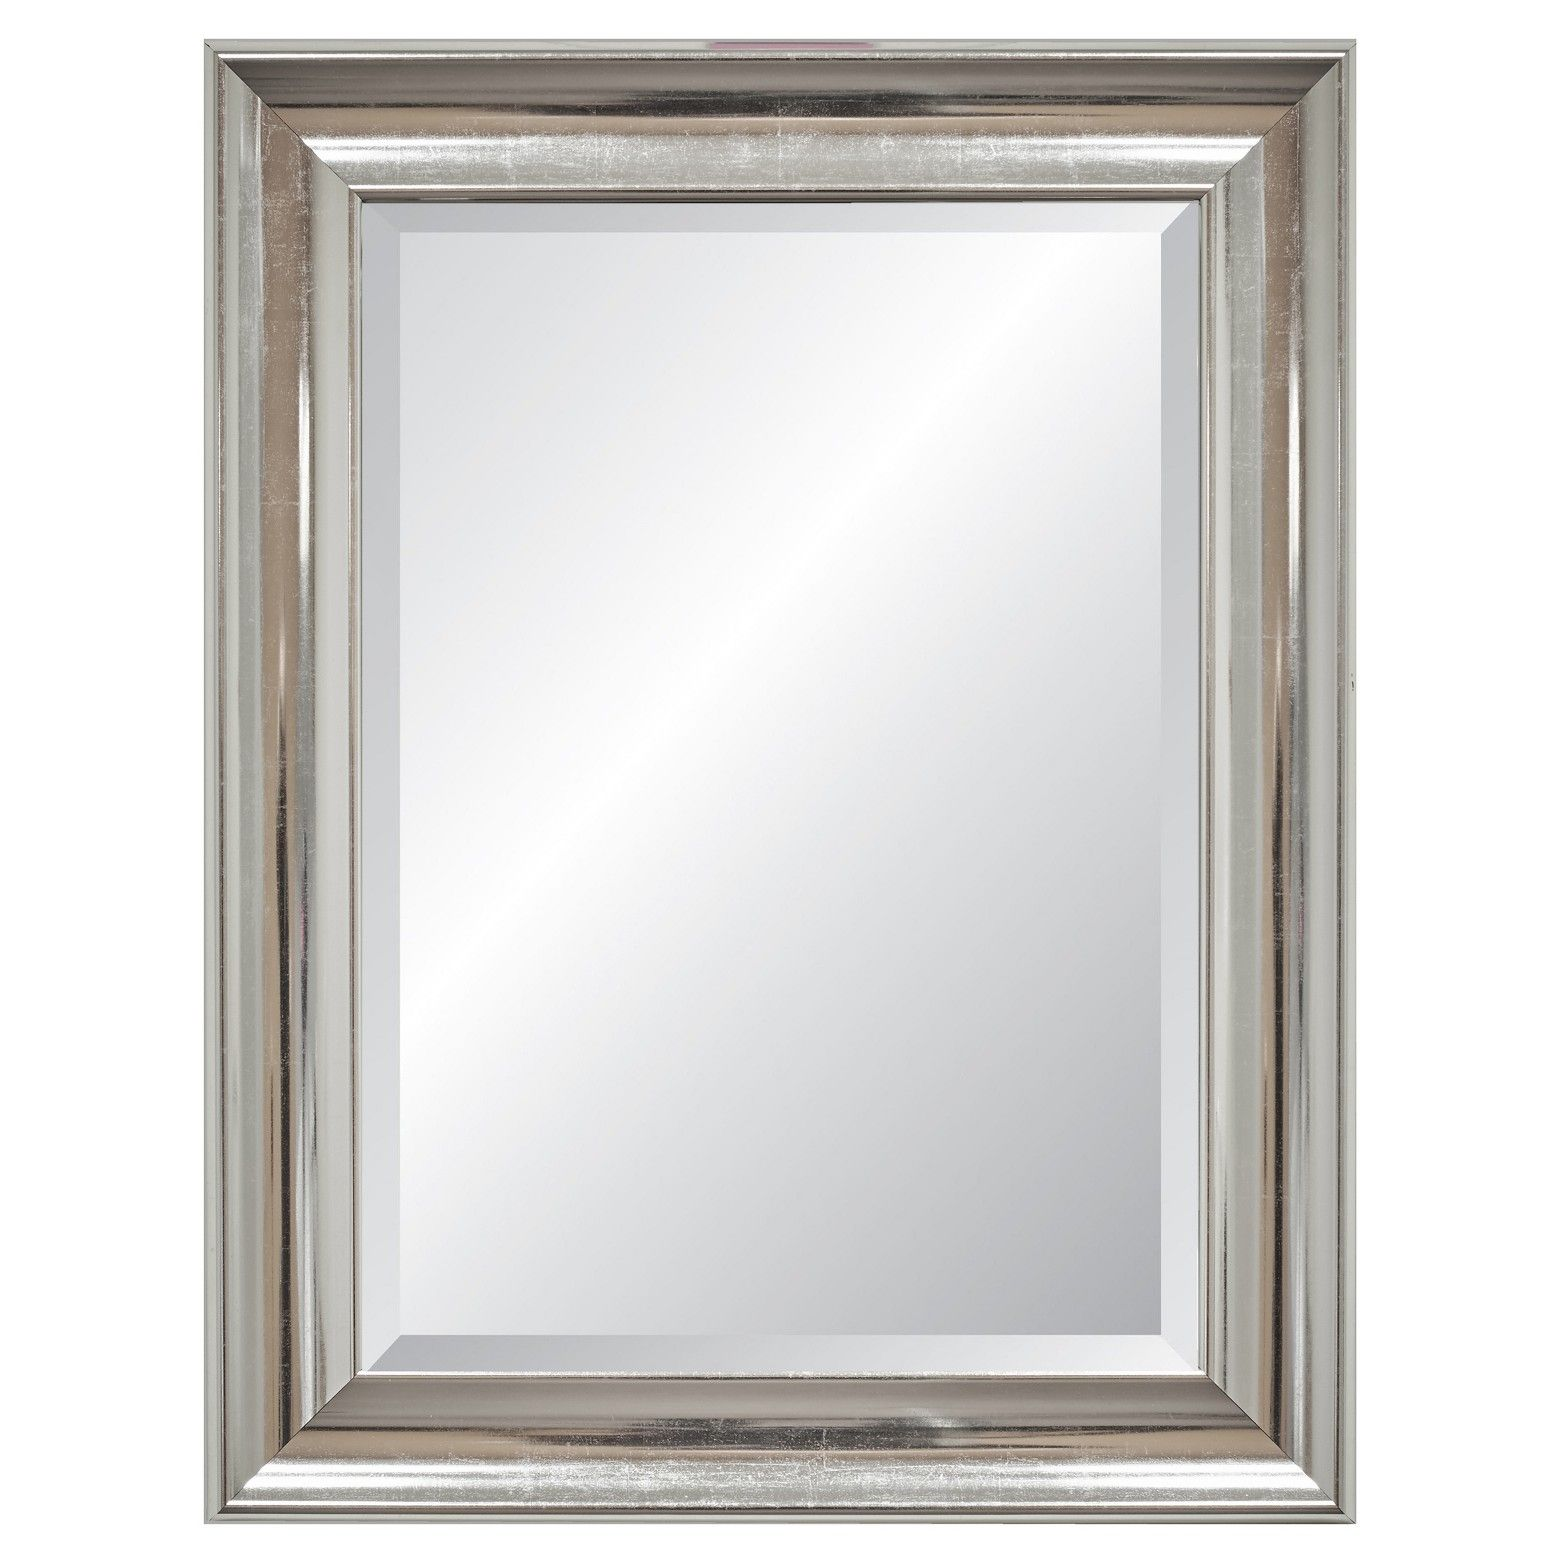 Rectangle Elevation Beveled Decorative Wall Mirror With Silver Frame